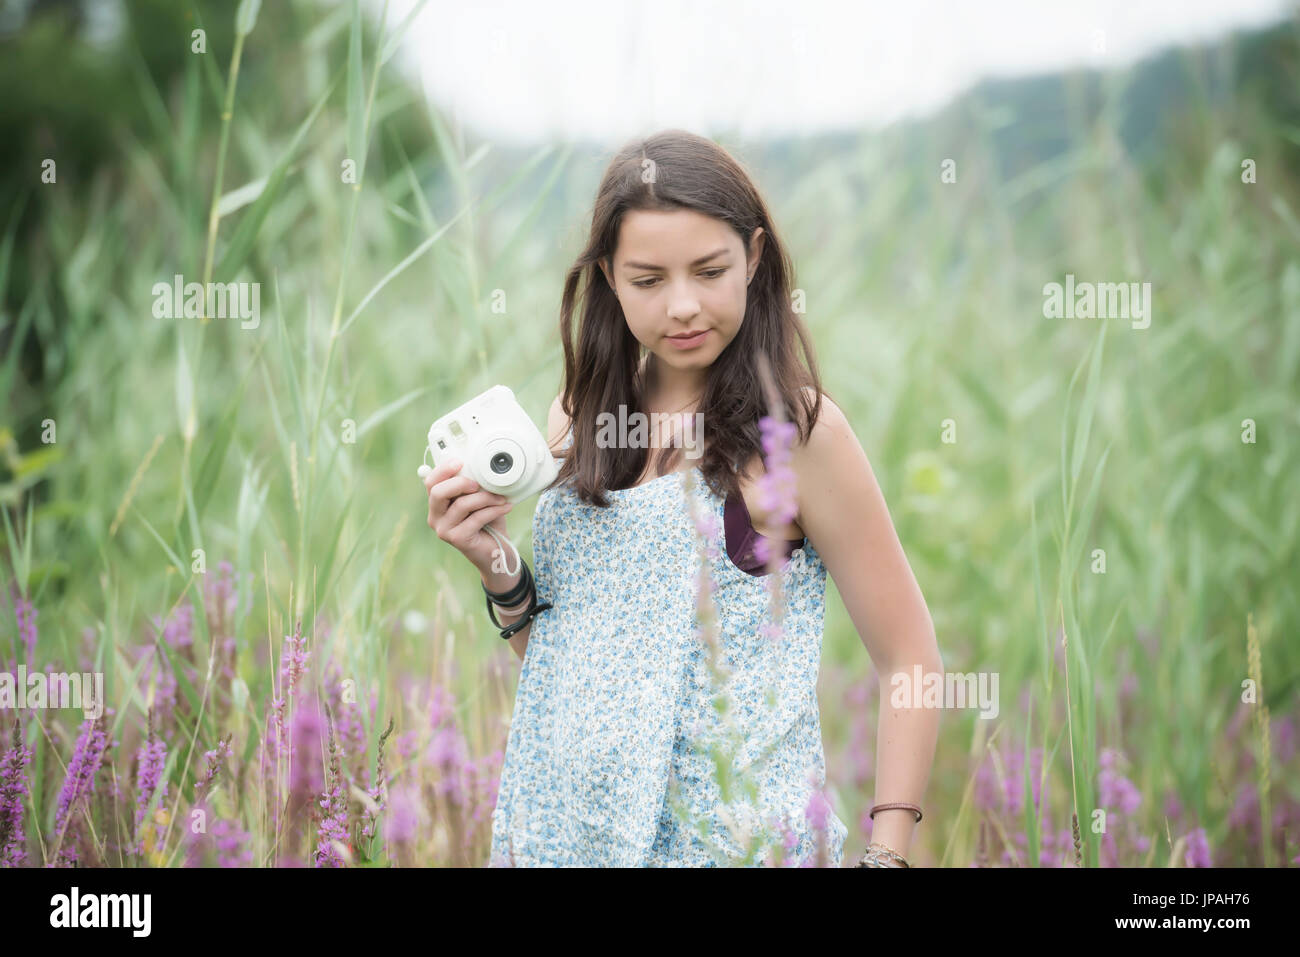 Girls with camera in high grass - Stock Image